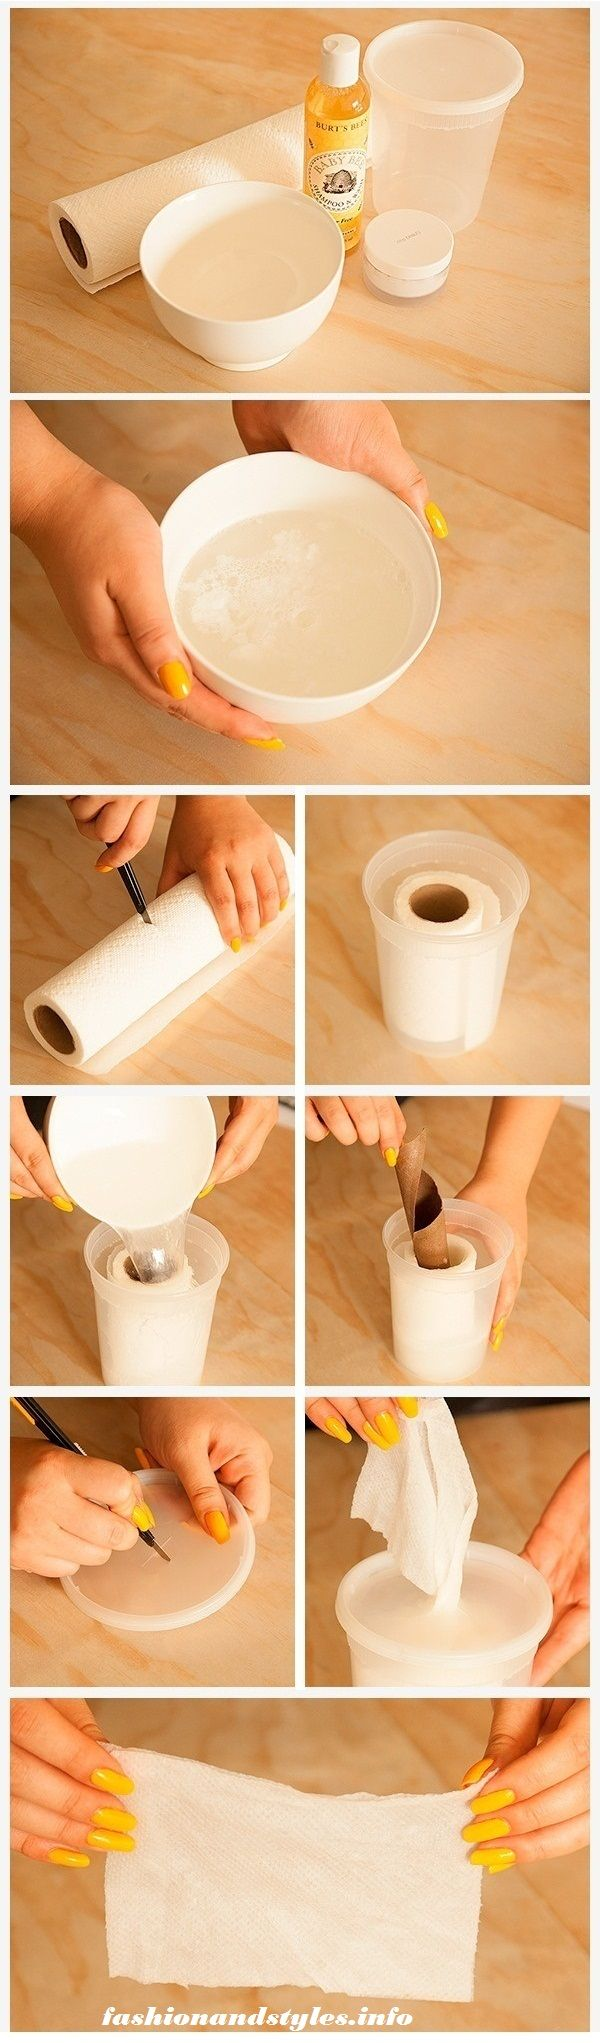 Make your own makeup remover or baby wipes! I am going to